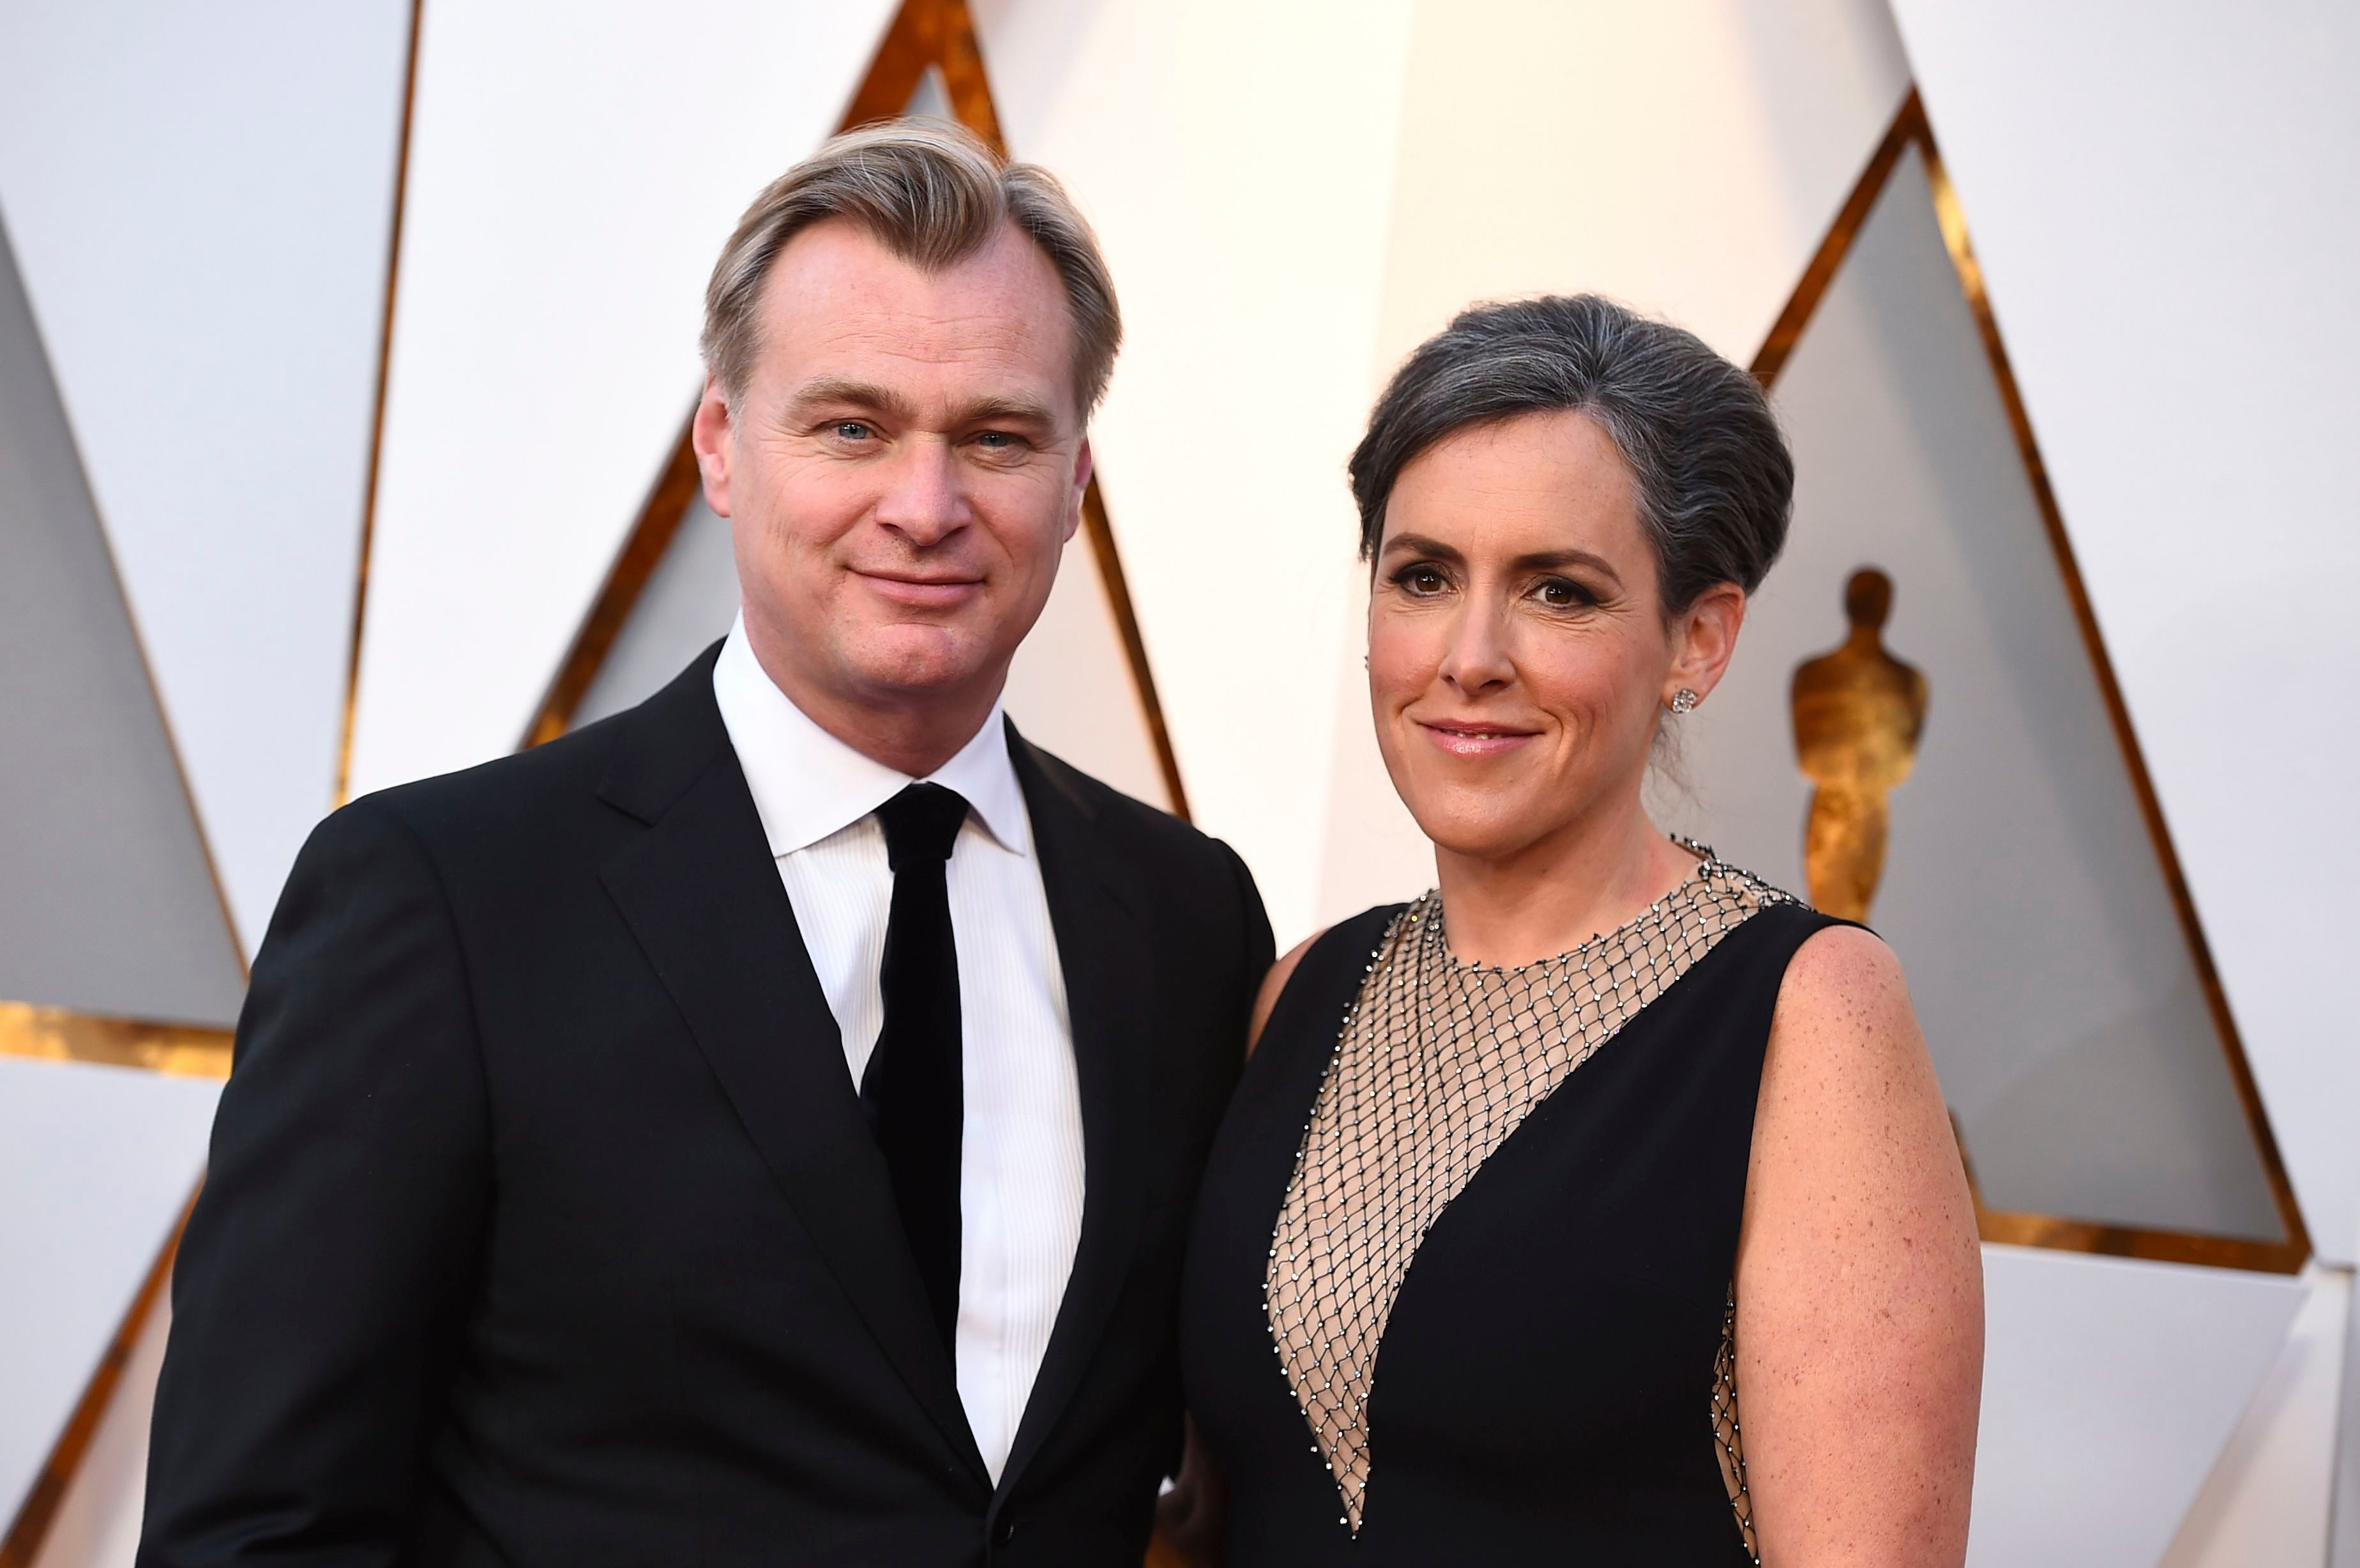 Christopher Nolan, Emma Thomas. Christopher Nolan, left, and Emma Thomas arrive at the Oscars, at the Dolby Theatre in Los Angeles90th Academy Awards - Arrivals, Los Angeles, USA - 04 Mar 2018